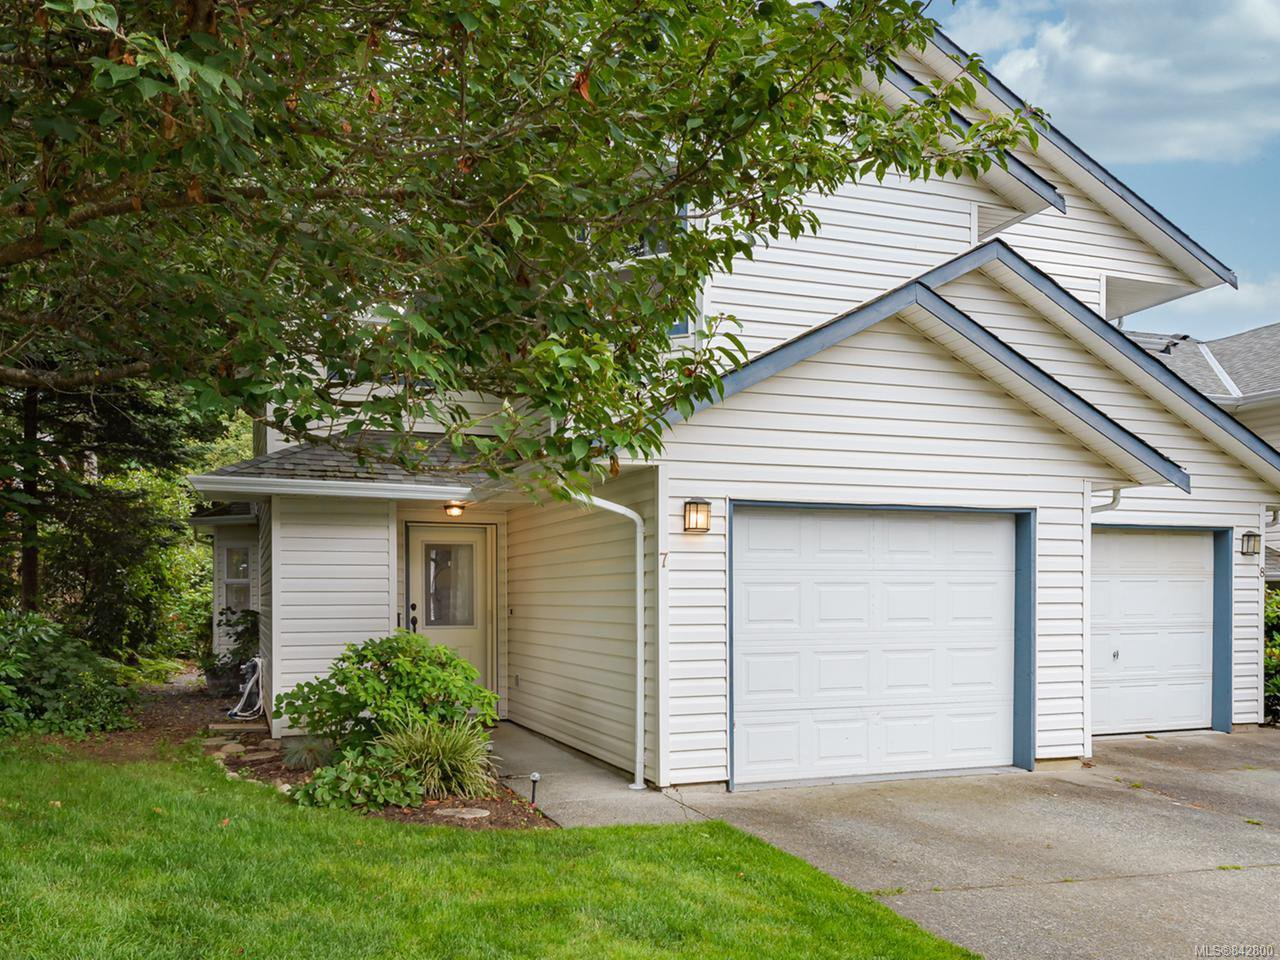 Main Photo: 7 2355 Valley View Dr in COURTENAY: CV Courtenay East Row/Townhouse for sale (Comox Valley)  : MLS®# 842800